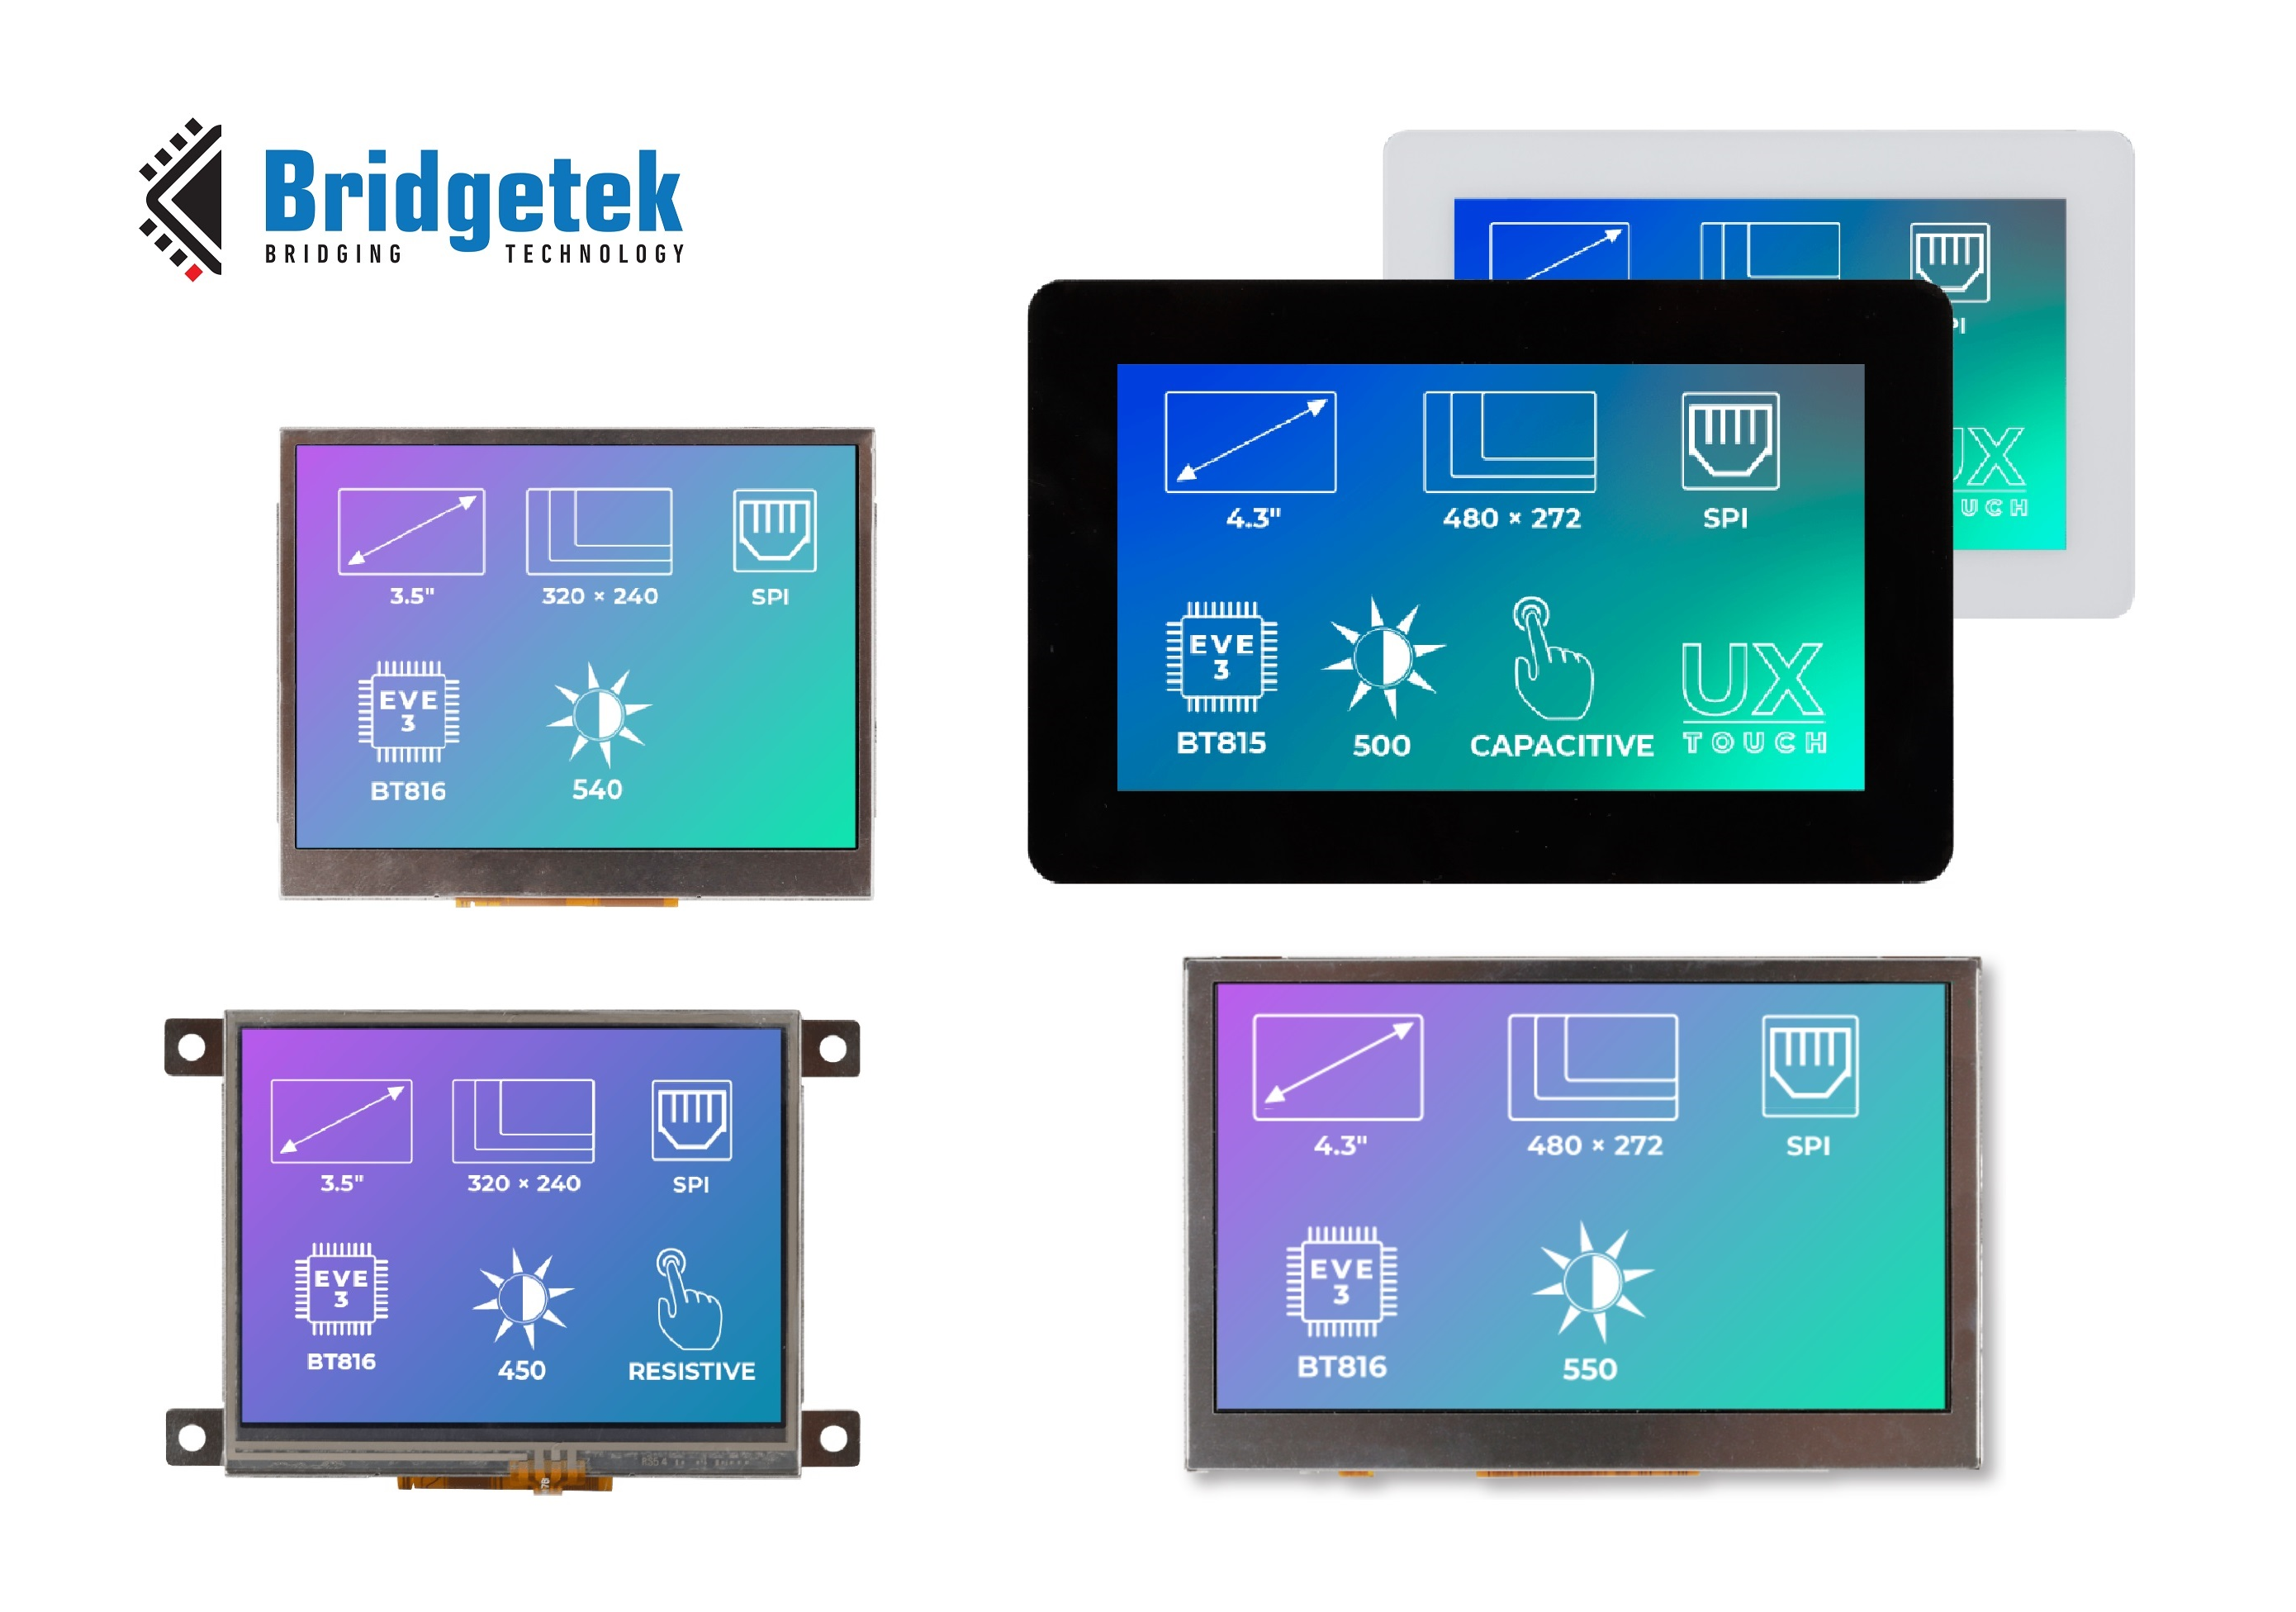 Bridgetek Joins forces with Zerynth & Riverdi to forge IoT Technology Partnership